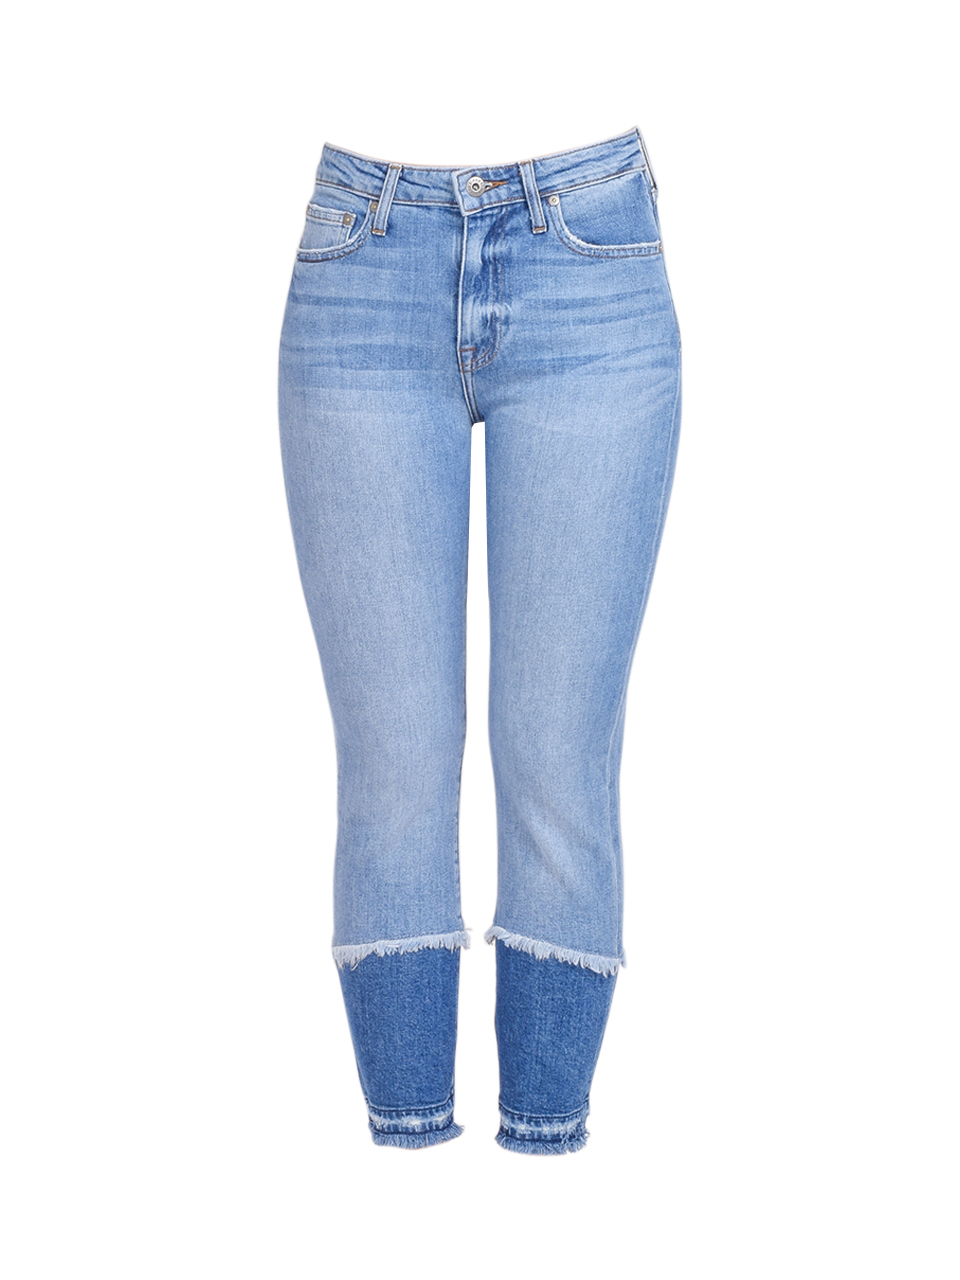 River Straight Leg Jean in Cayucas Light Wash Product Shot